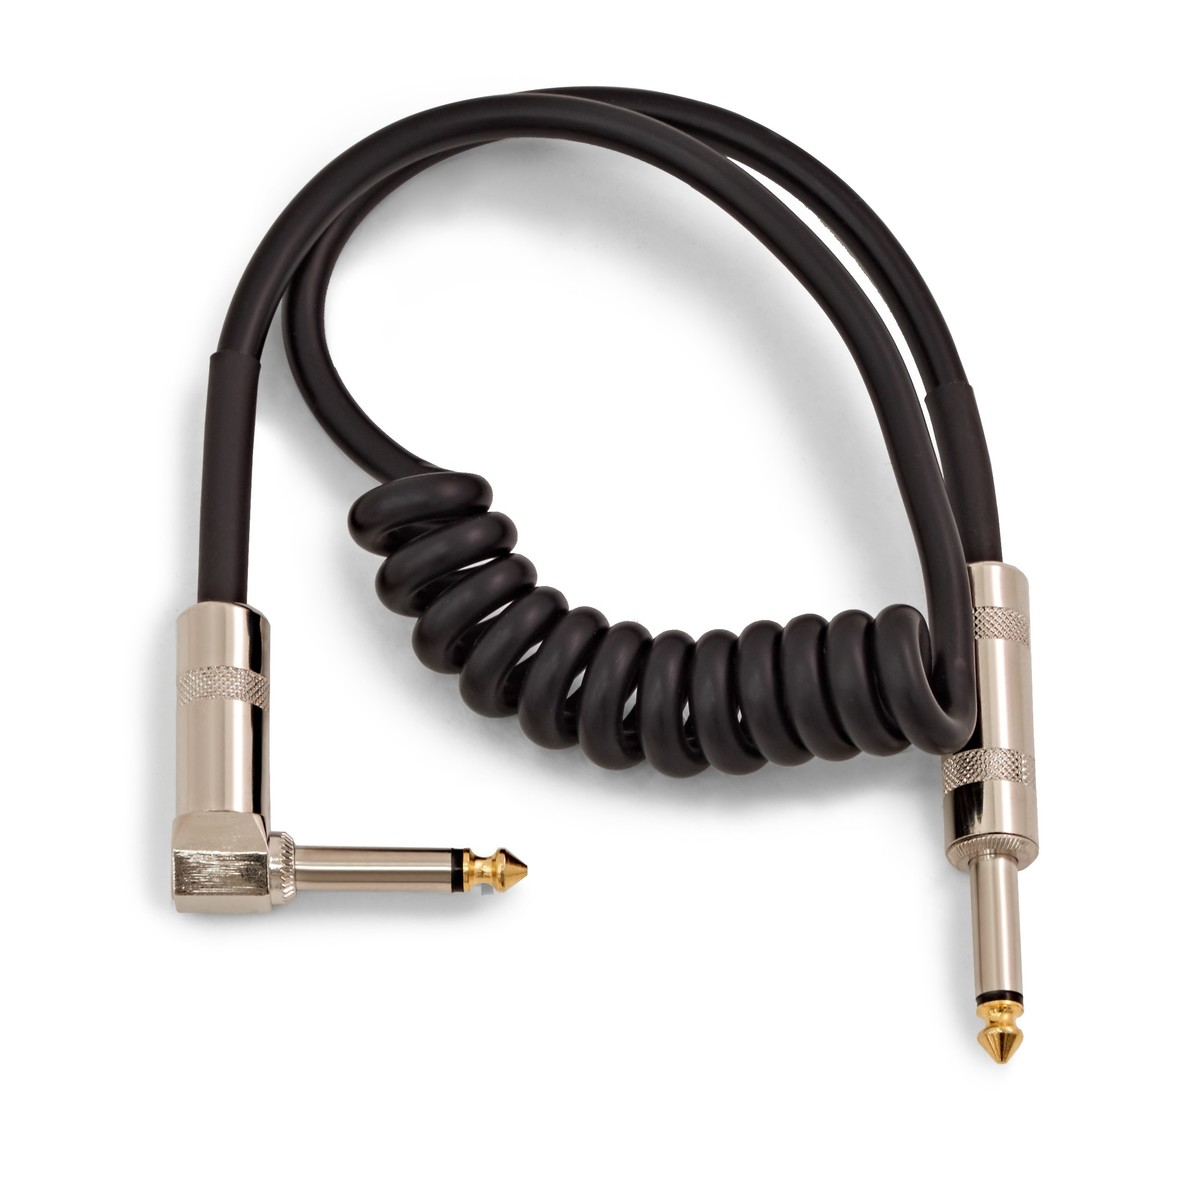 Coiled Instrument Cable : coiled jack instrument cable 1m at gear4music ~ Russianpoet.info Haus und Dekorationen